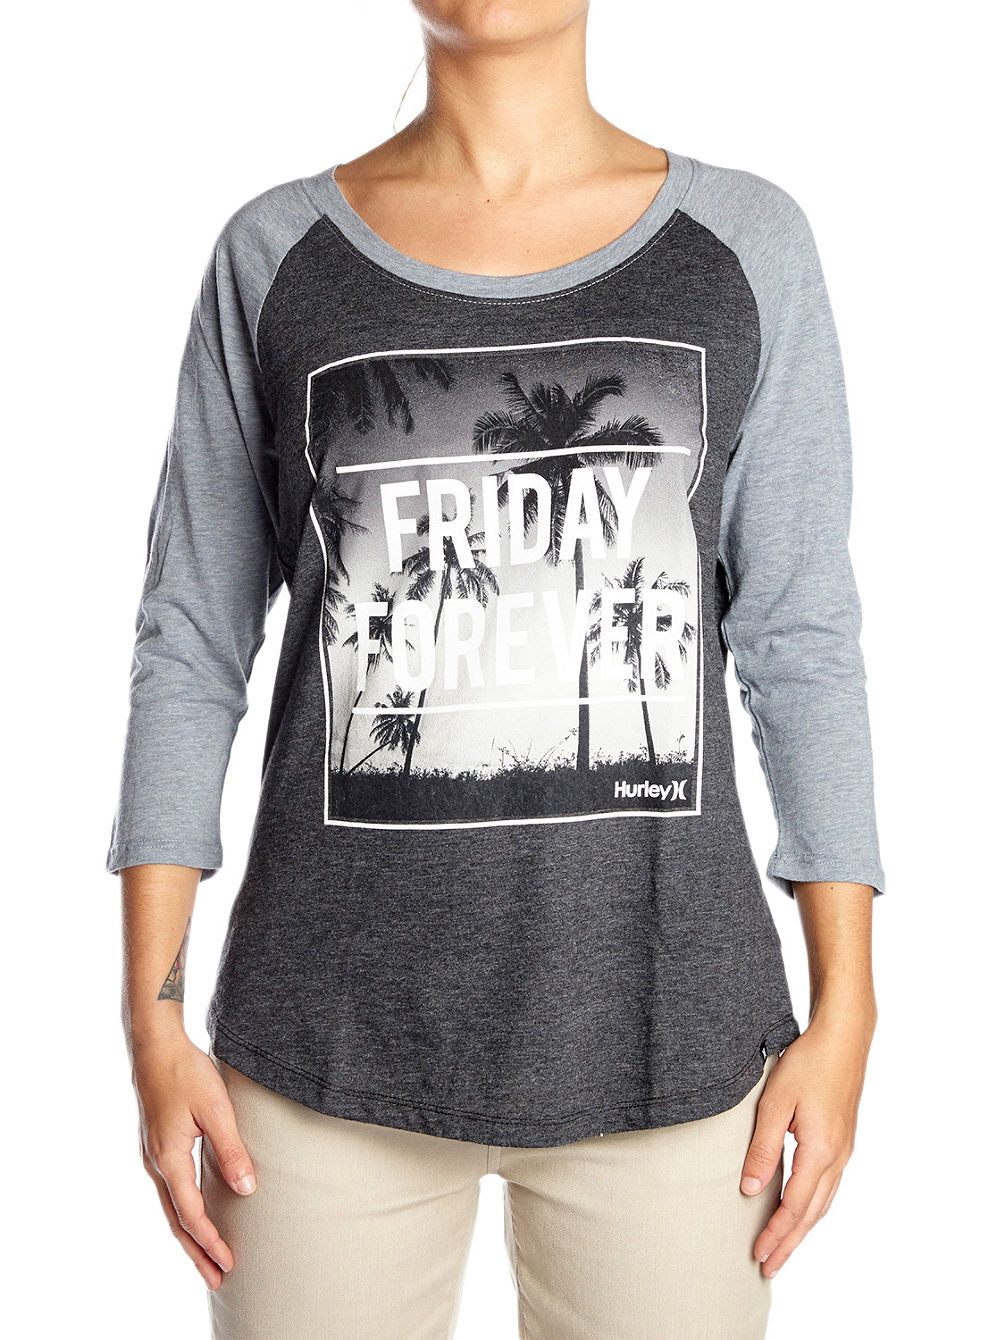 hurley-friday-forever-easy-raglan-t-shirt-ls